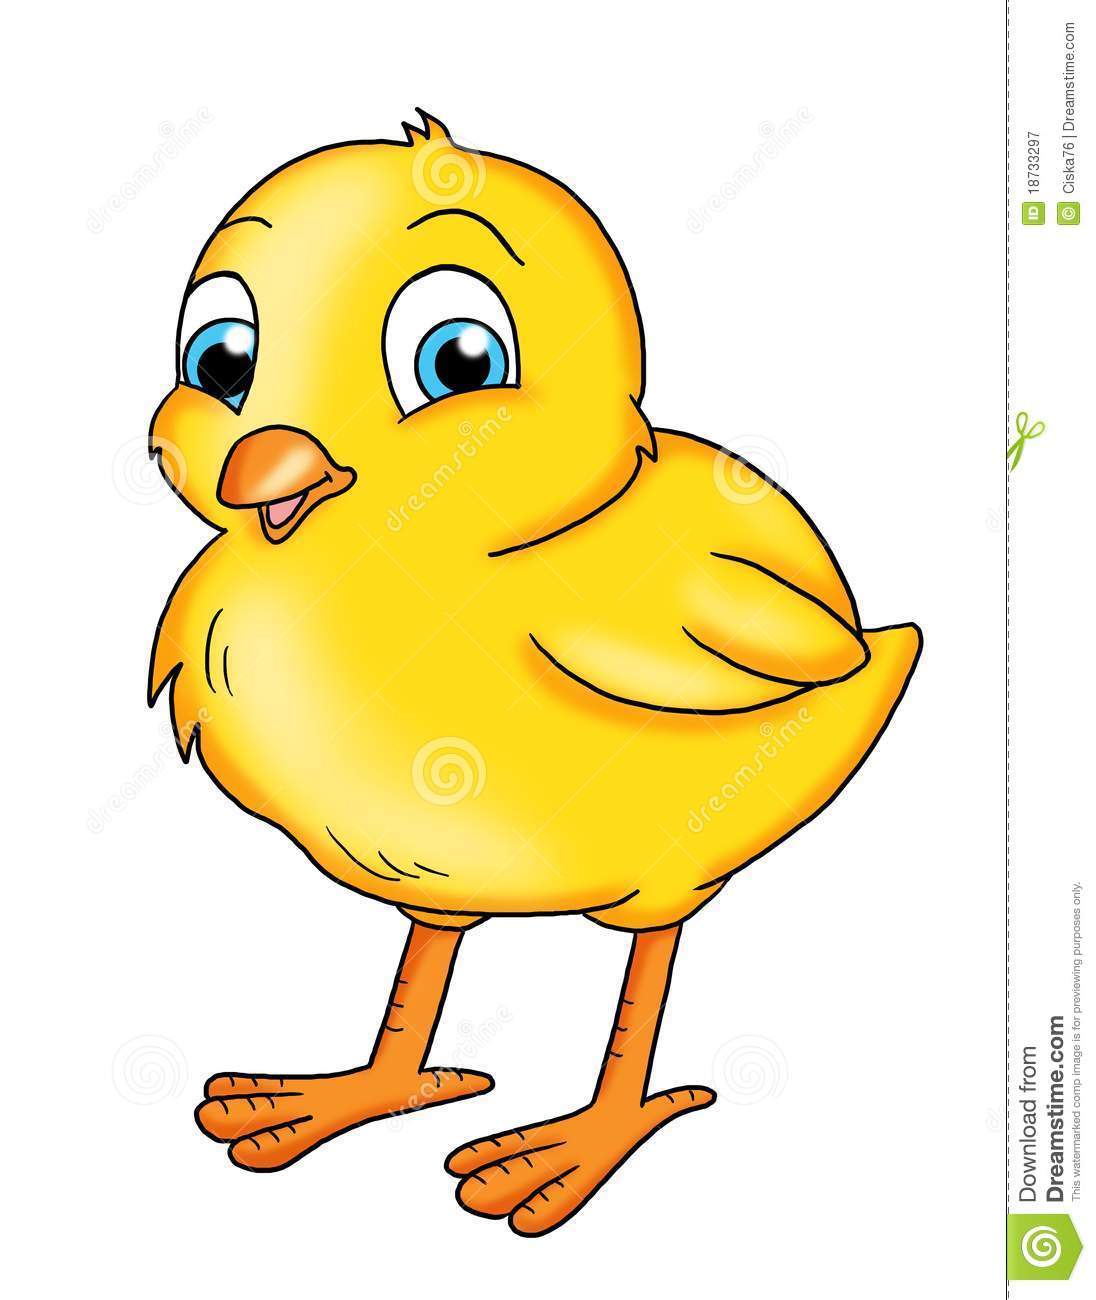 Baby chickens clipart - photo#13